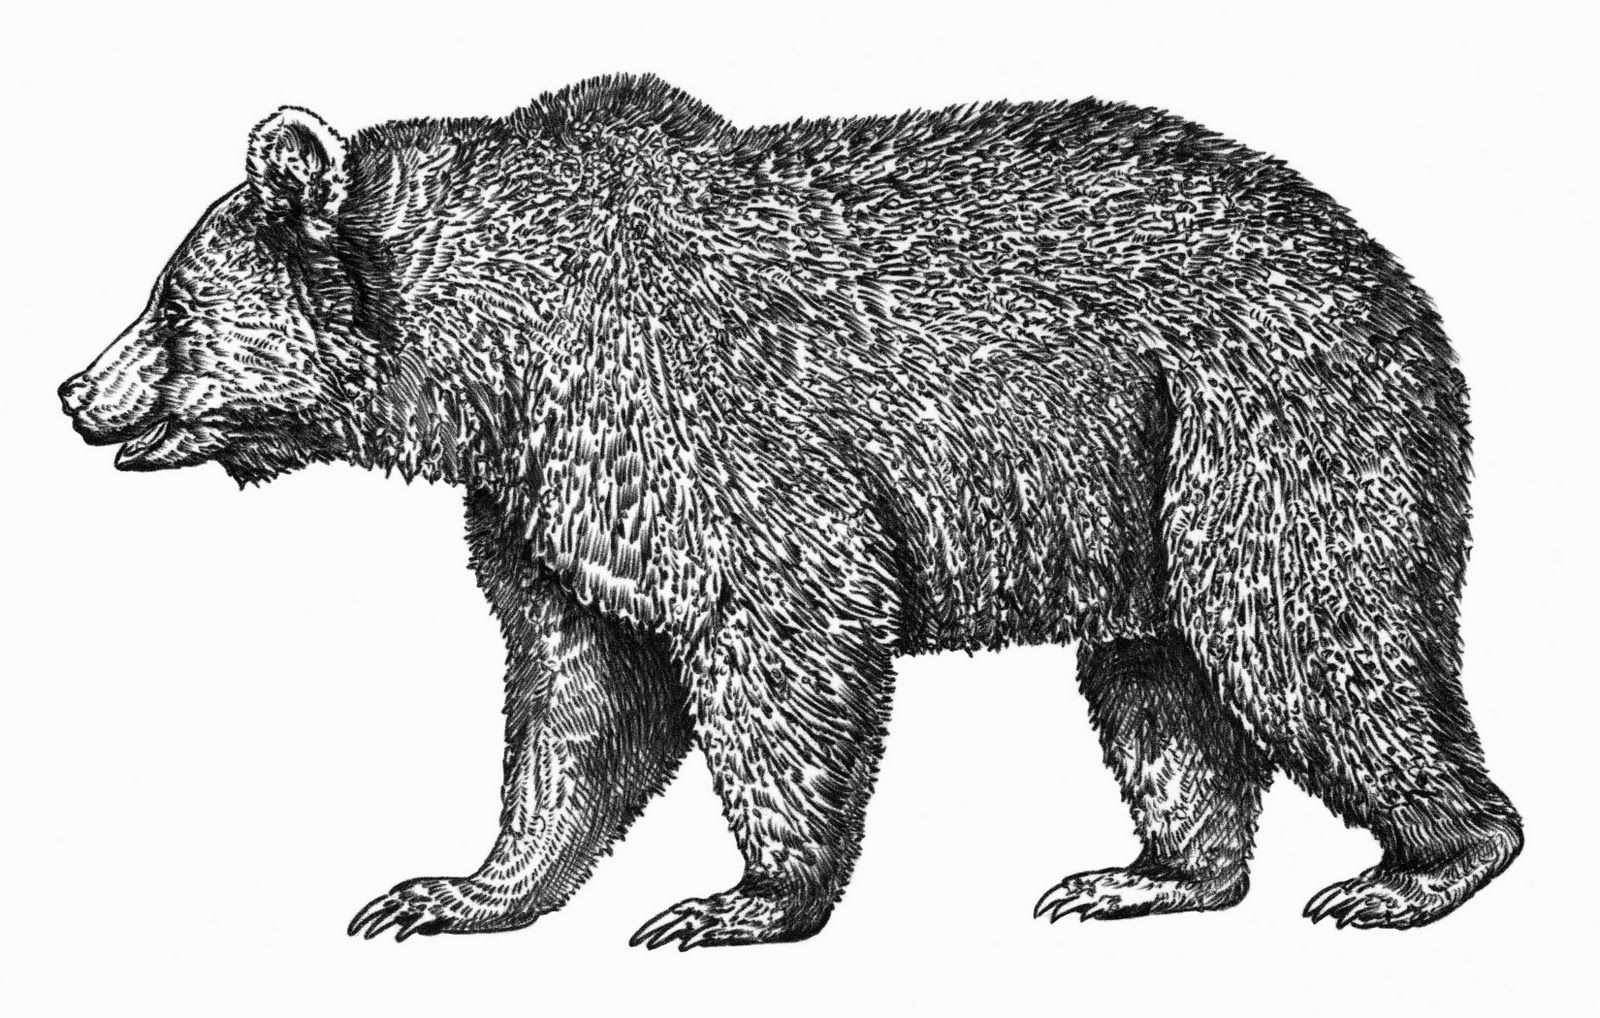 draw grizzly bear drawings of grizzly bears bear drawing animal drawings draw bear grizzly